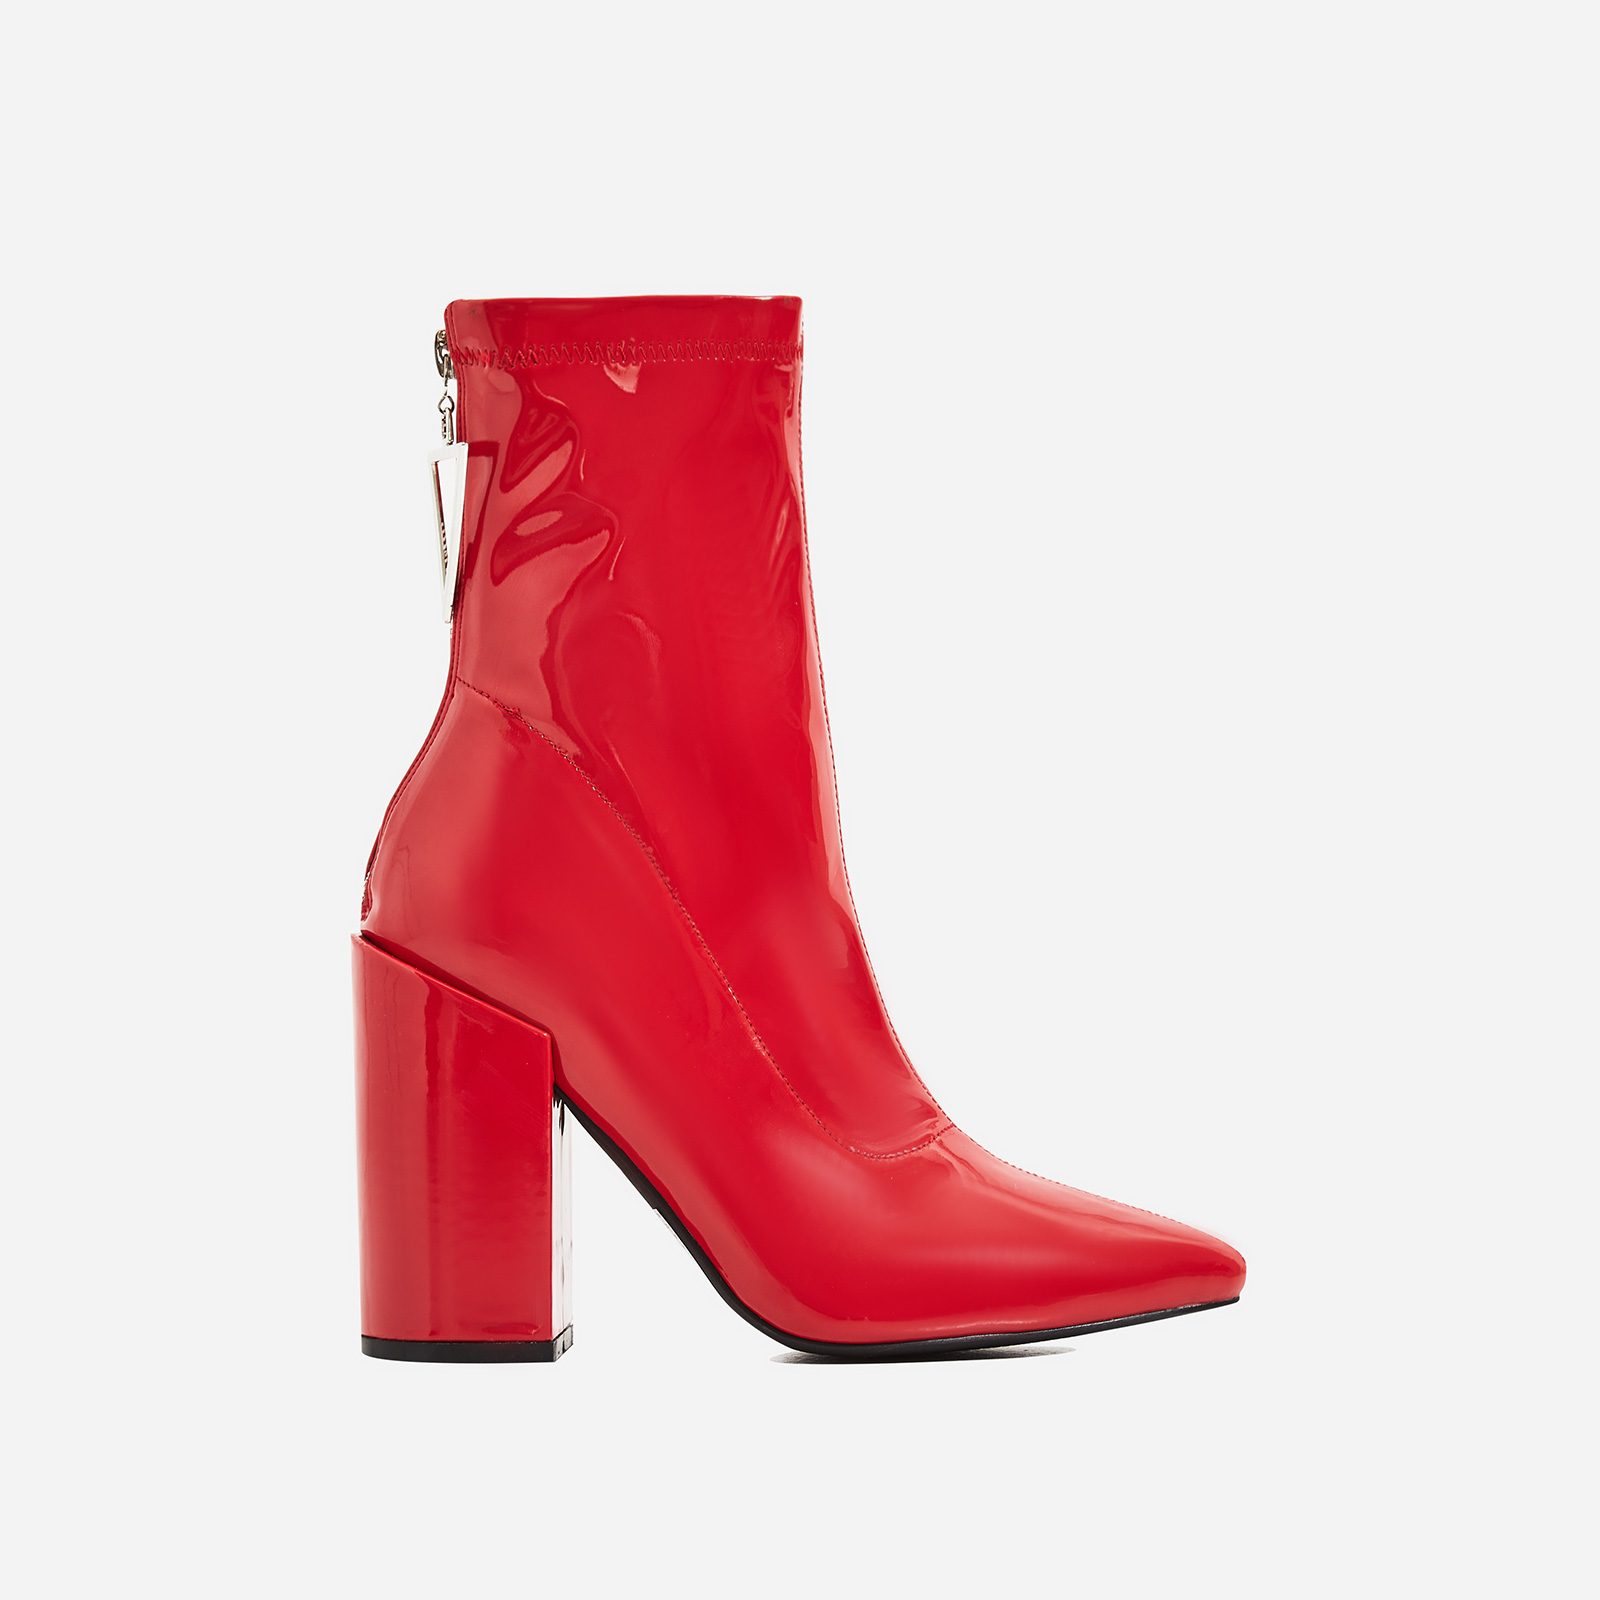 Monica Triangle Zip Detail Black Heel Ankle Boot In Red Patent